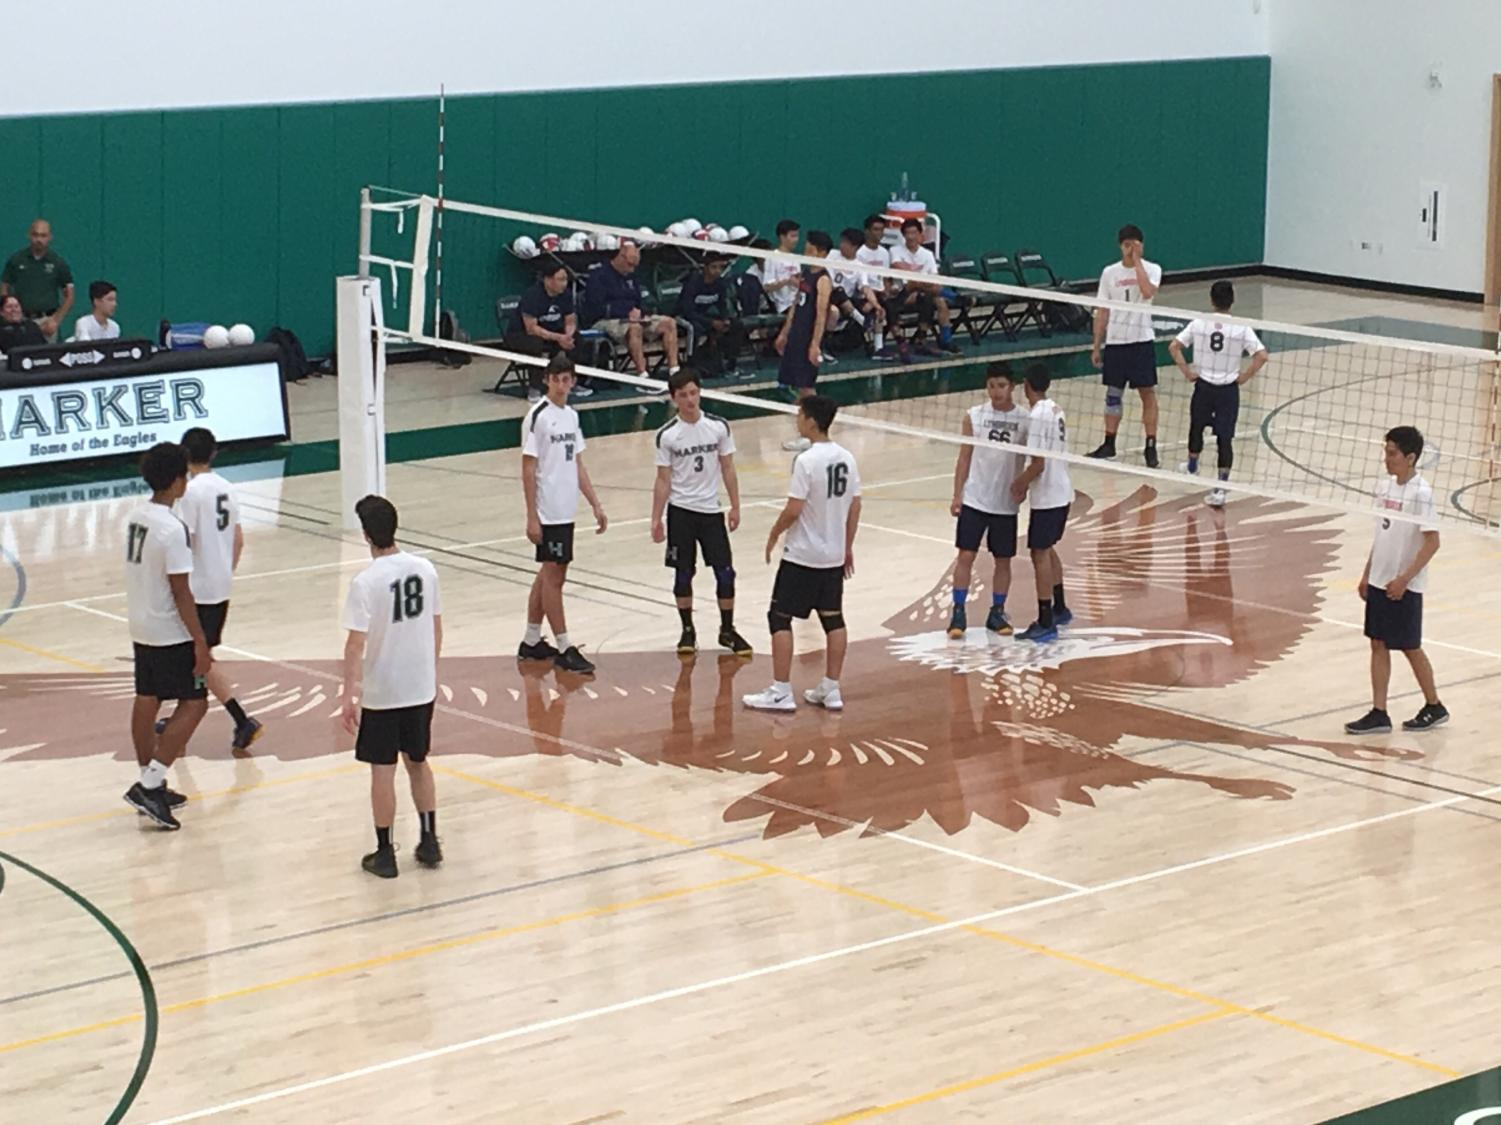 The varsity boys' volleyball game stands in position before the ball is served by the other team. They won their game against Lynbrook in three sets.